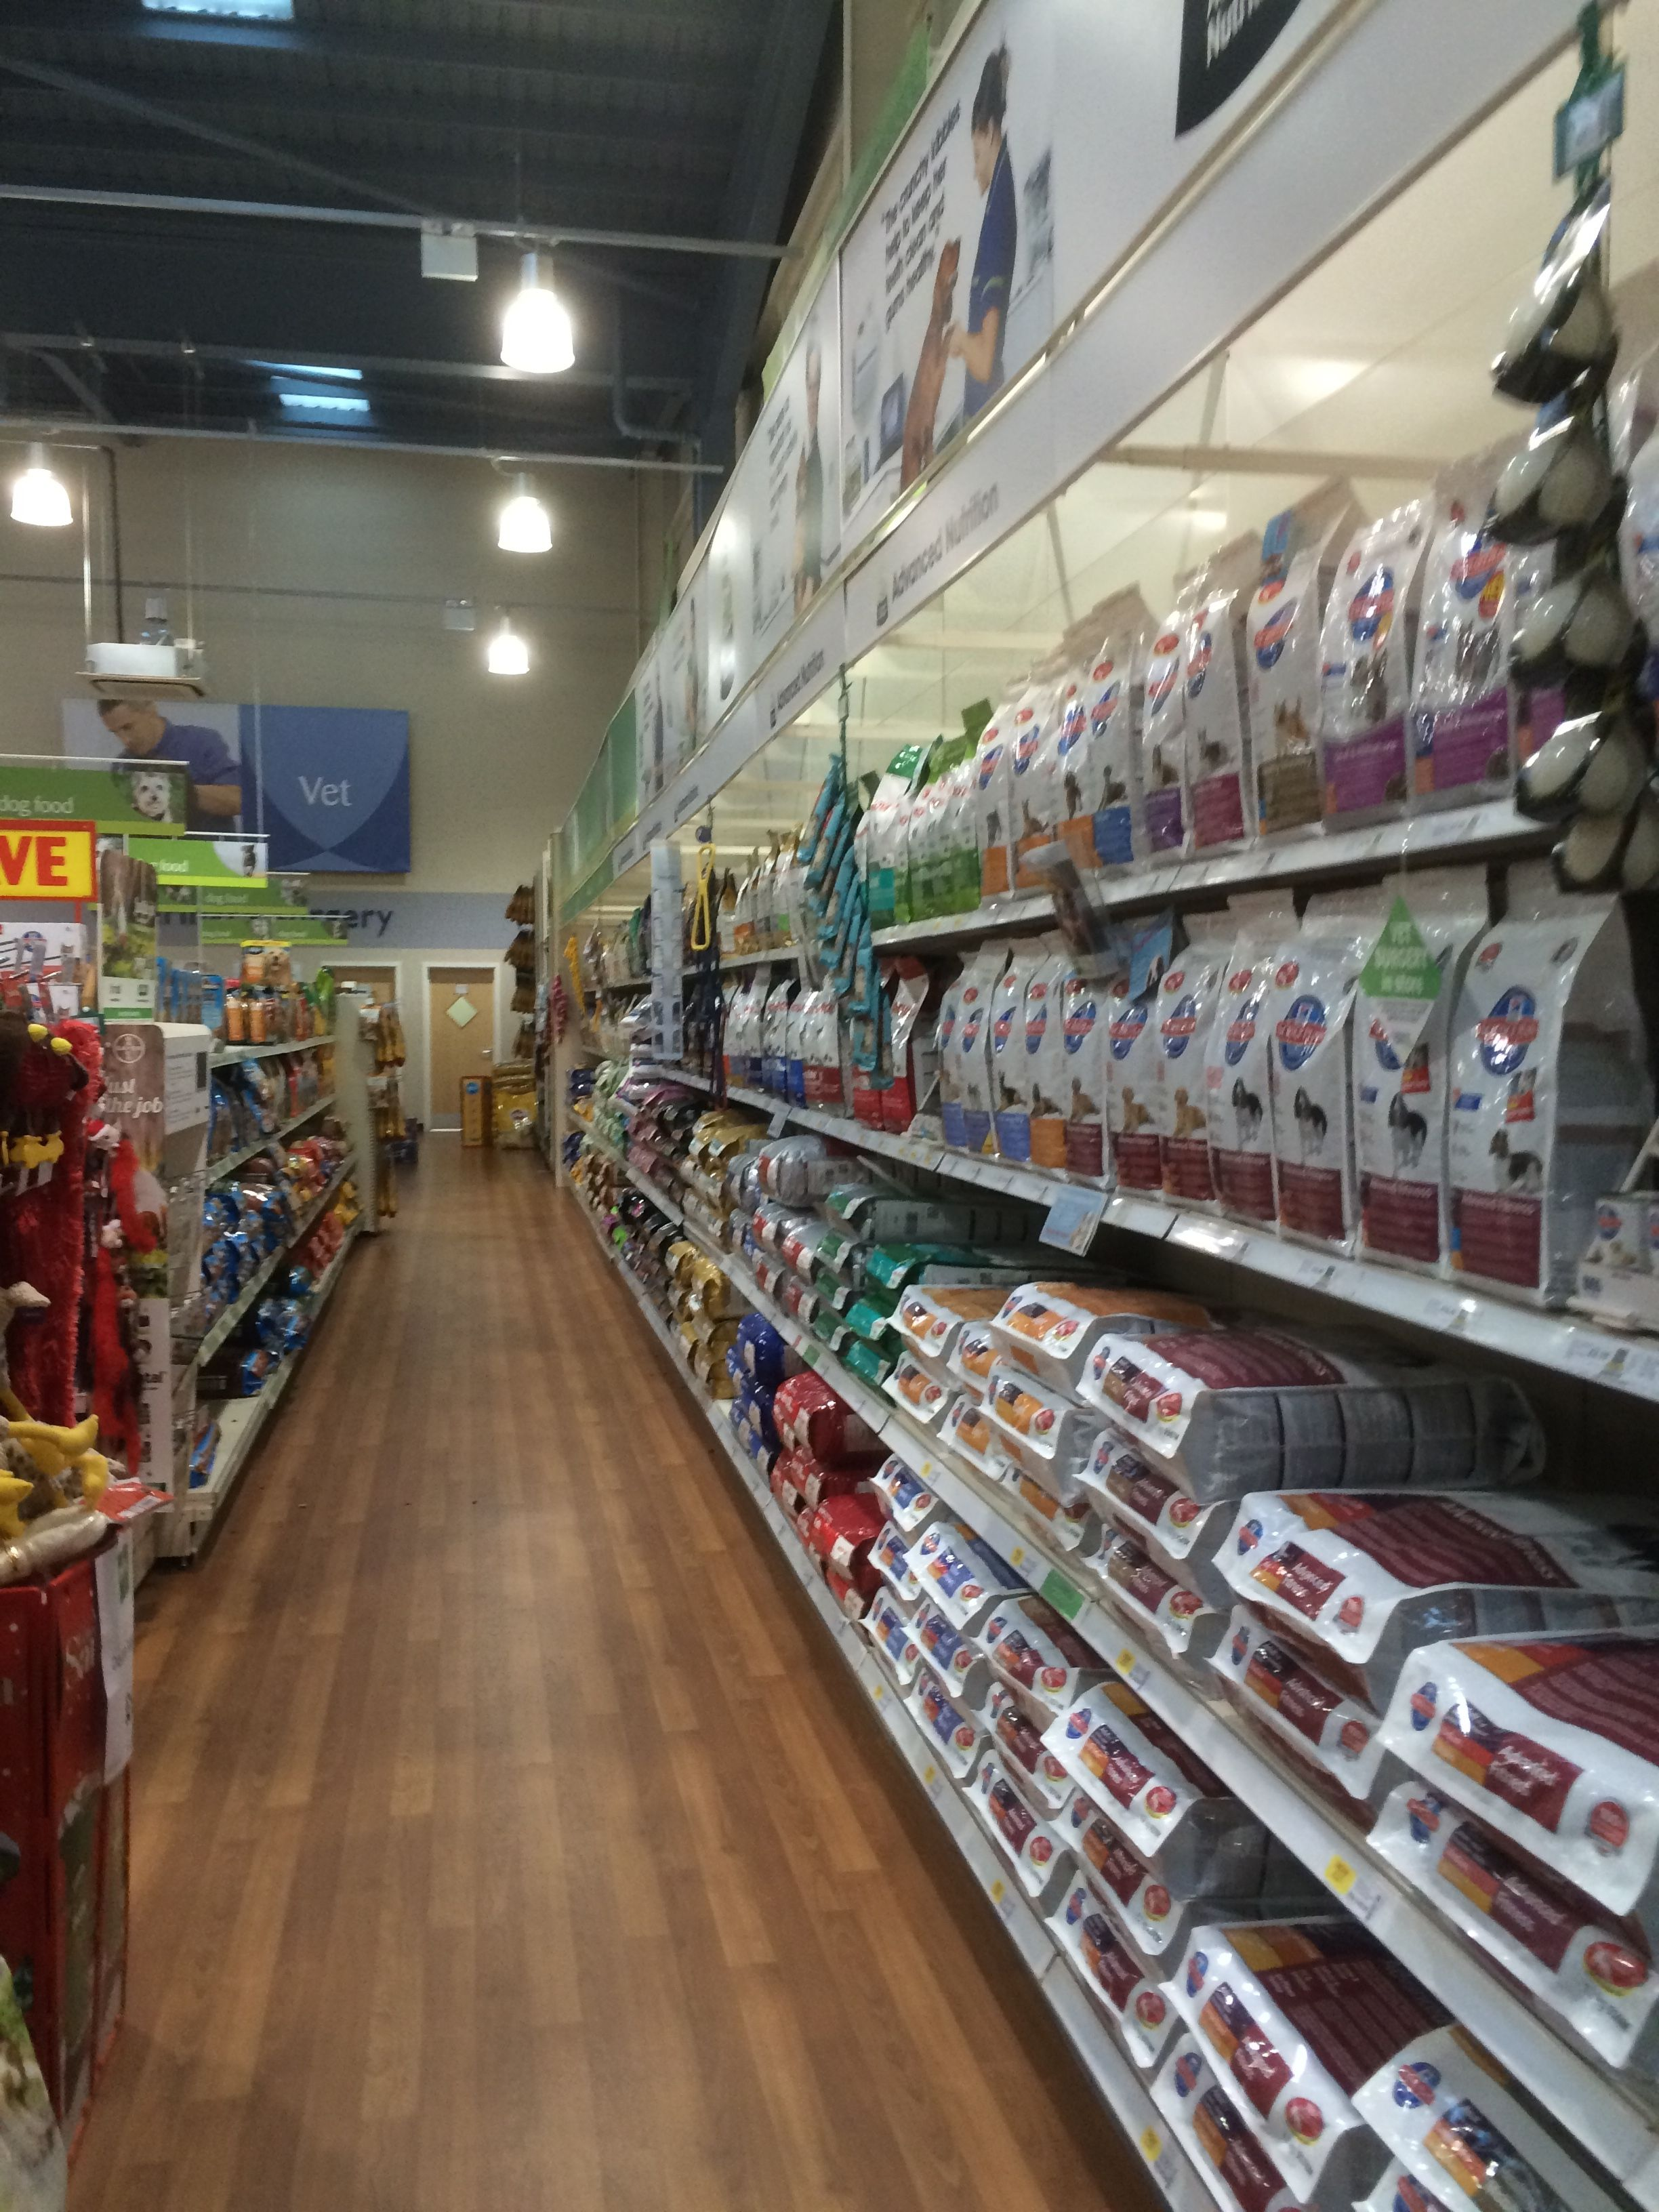 Pets At Home Netherfield Nottingham Pet Shop Pet Services Vets Grooming Layout Landscape Customer Journey Visual M Banho E Tosa Casas Gatos